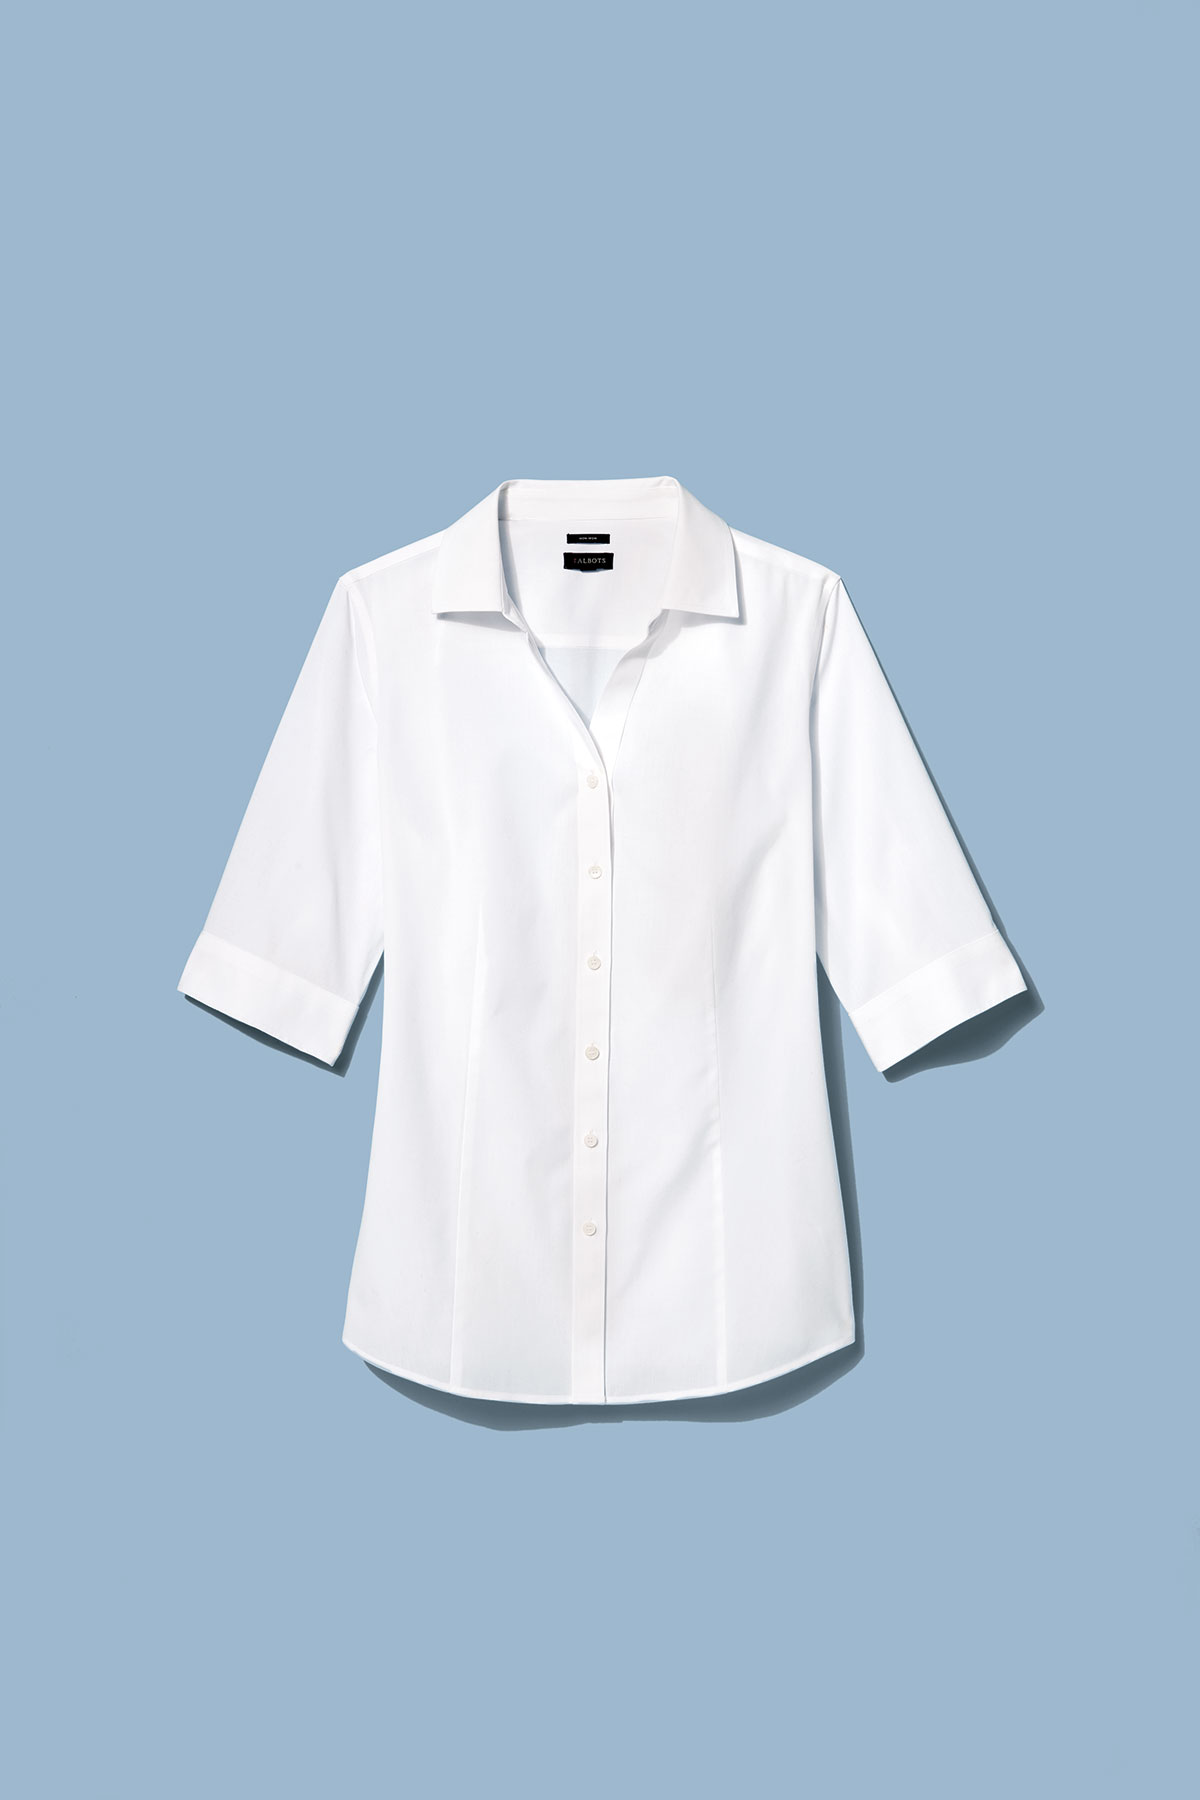 Talbots The Perfect Shirt (0618FAS)